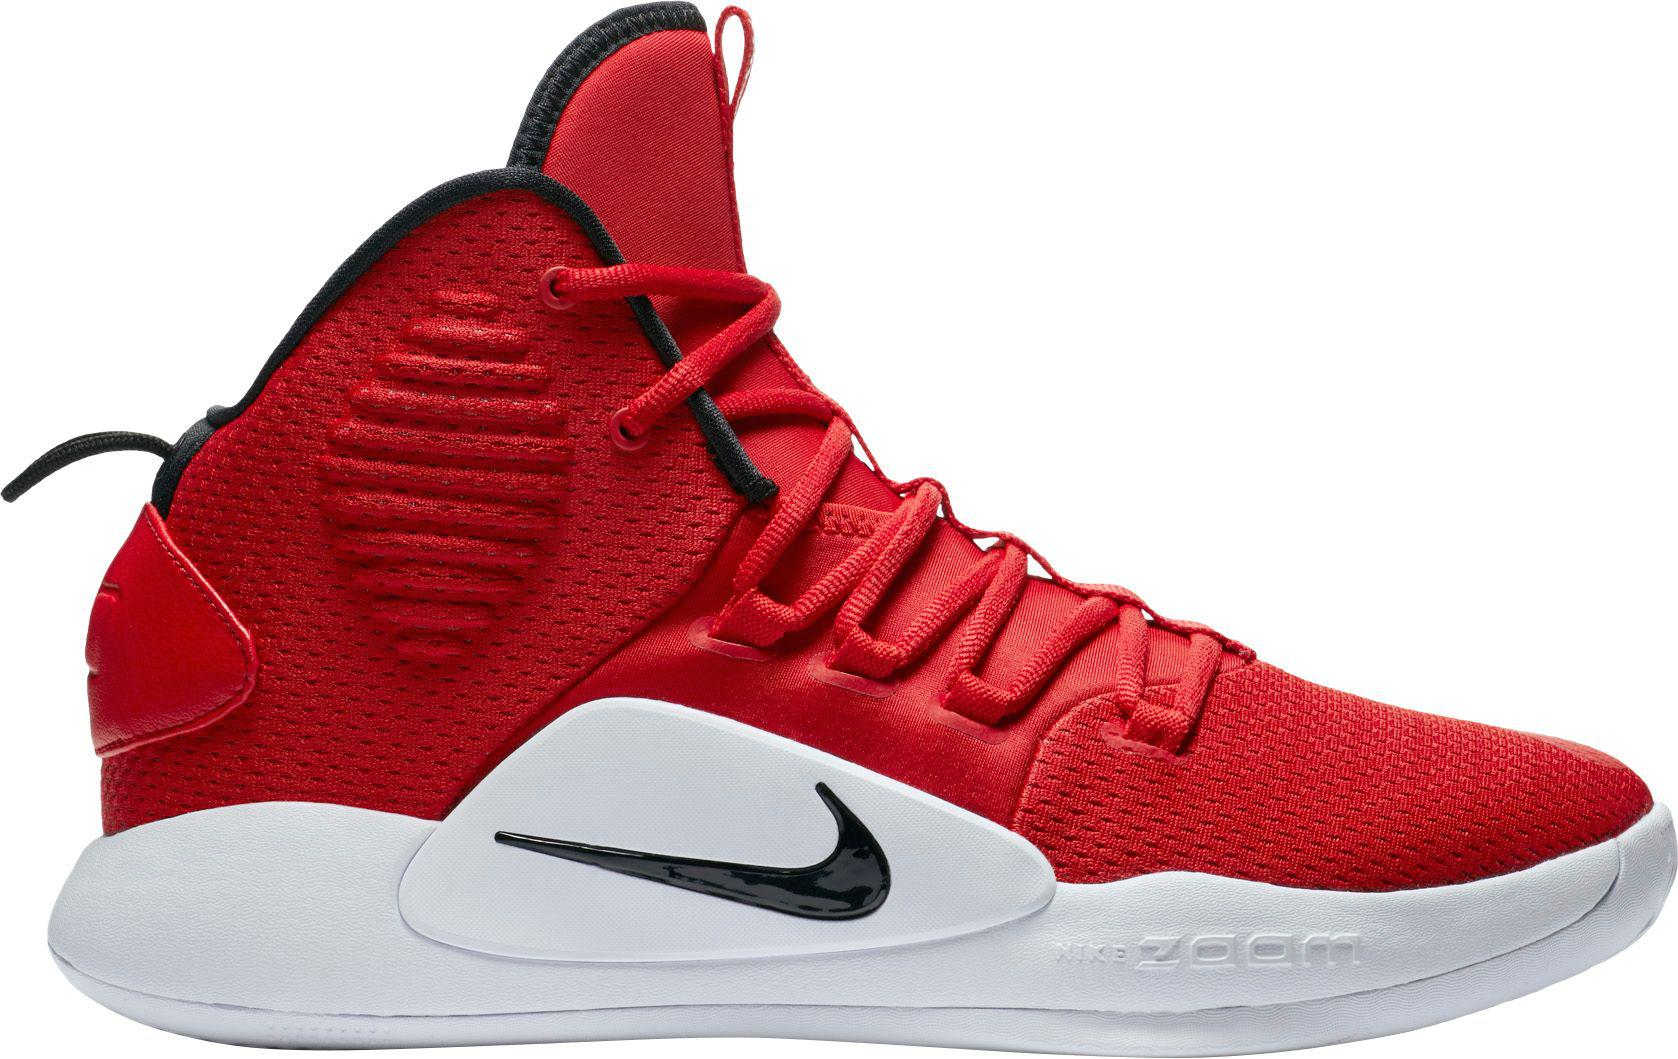 new arrival 2bb86 603f8 Nike - Red Hyperdunk X Mid Tb Basketball Shoes for Men - Lyst